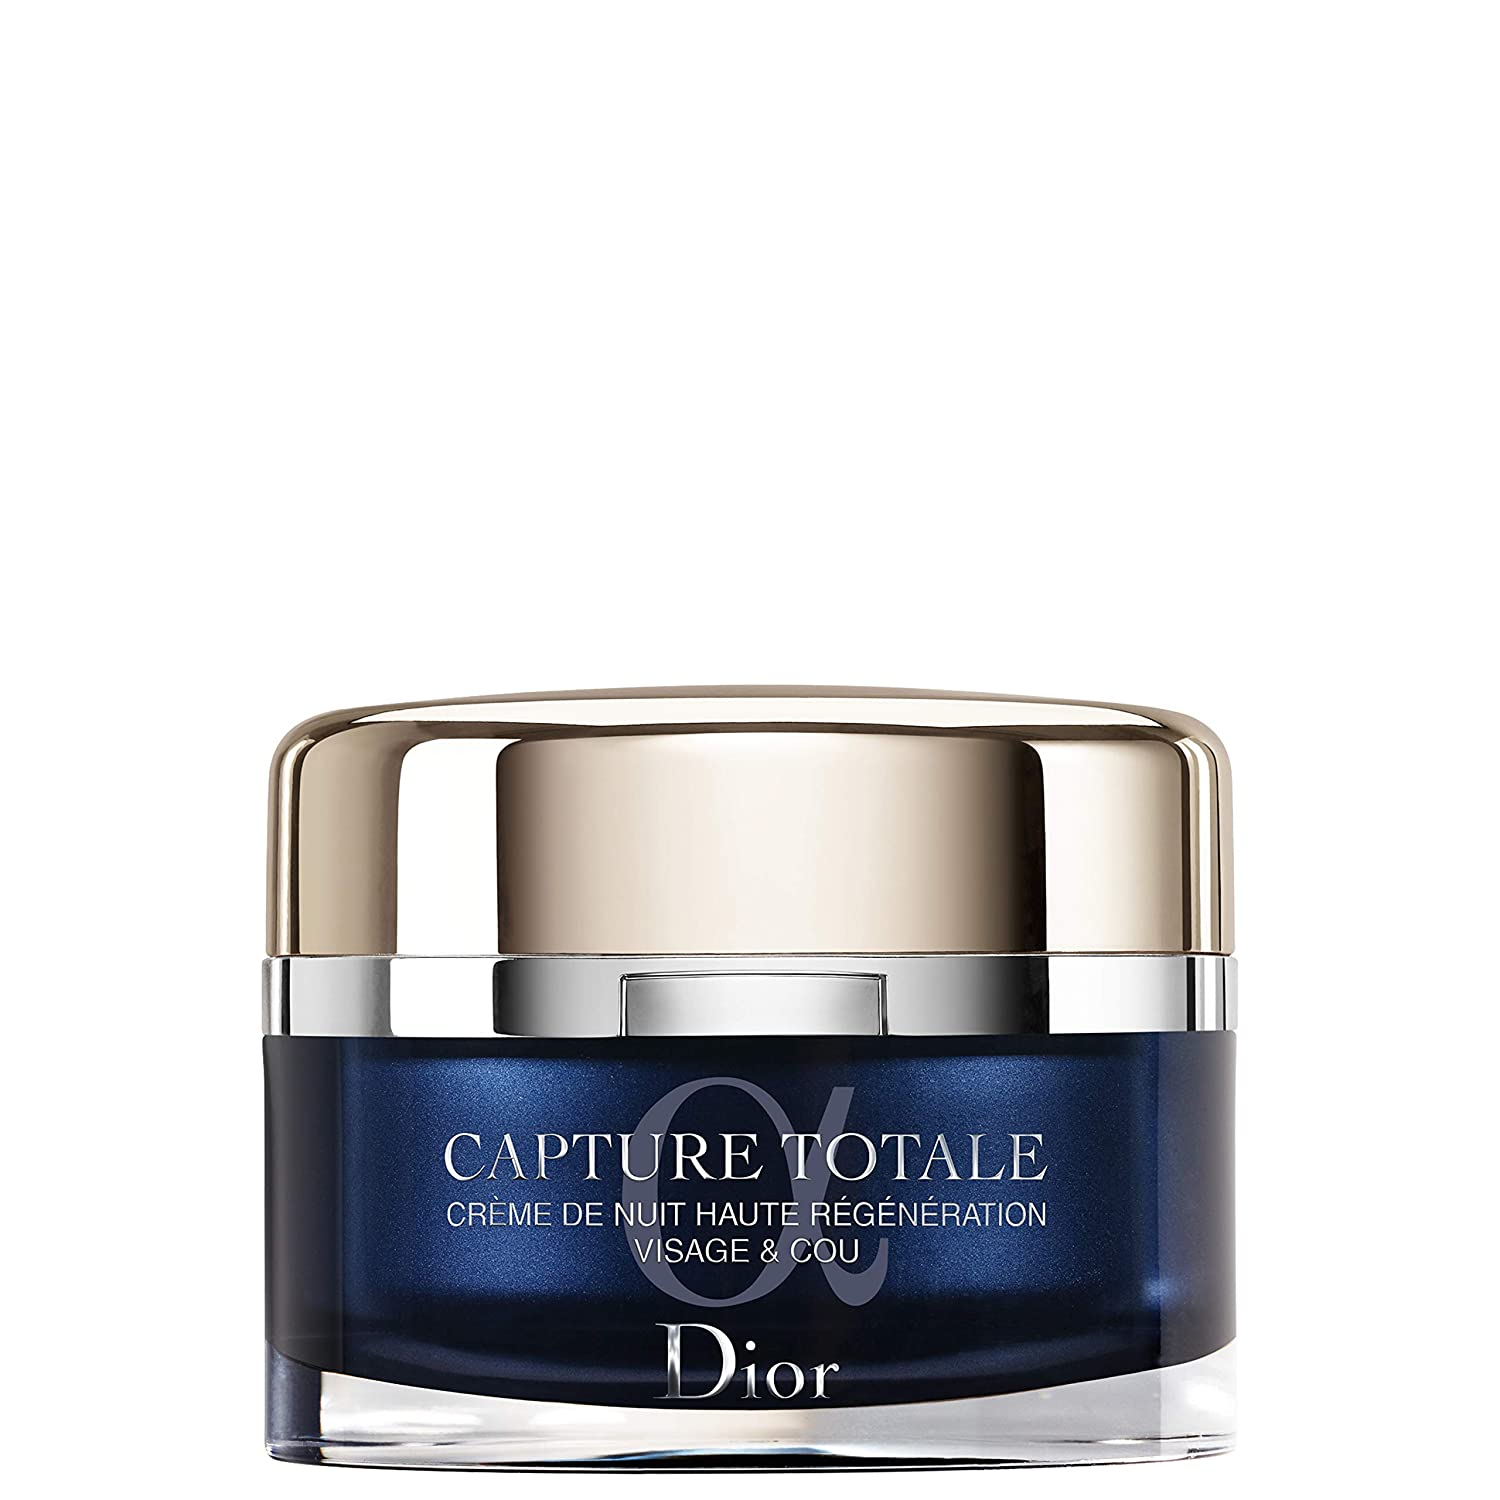 Christian Dior Capture Totale Nuit Intensive Night Restorative Creme Rechargeable 60ml 2.1oz